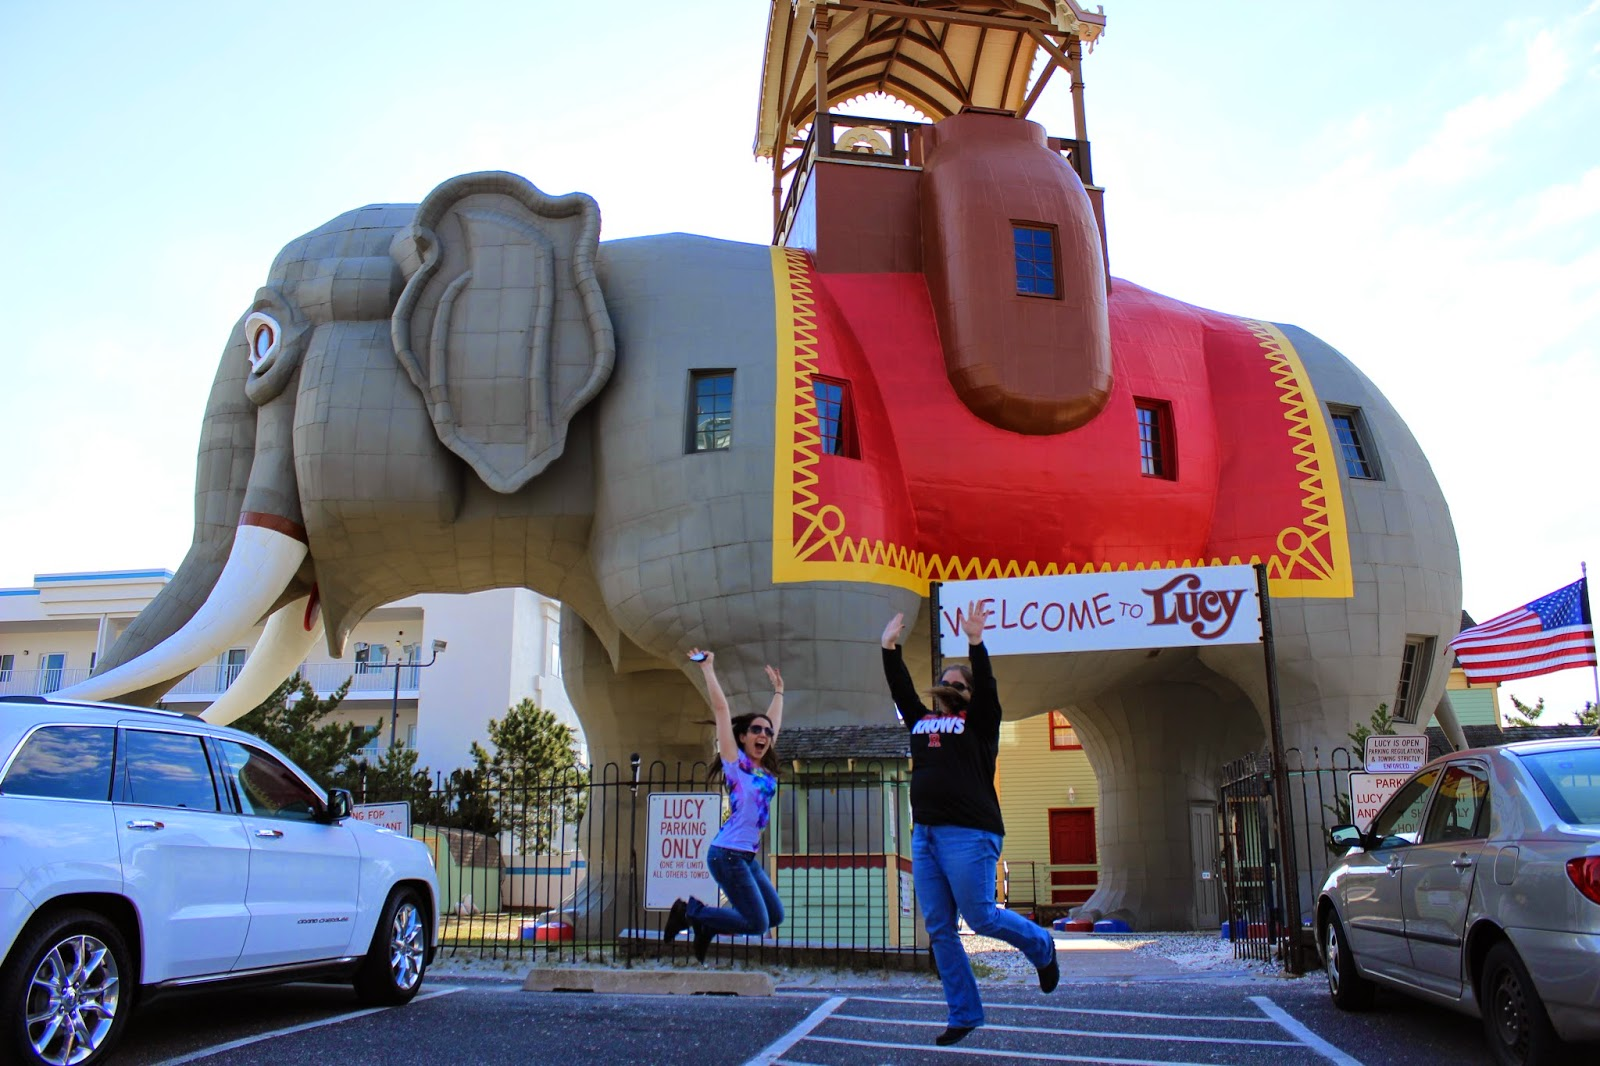 Lucy the elephant jumping shot